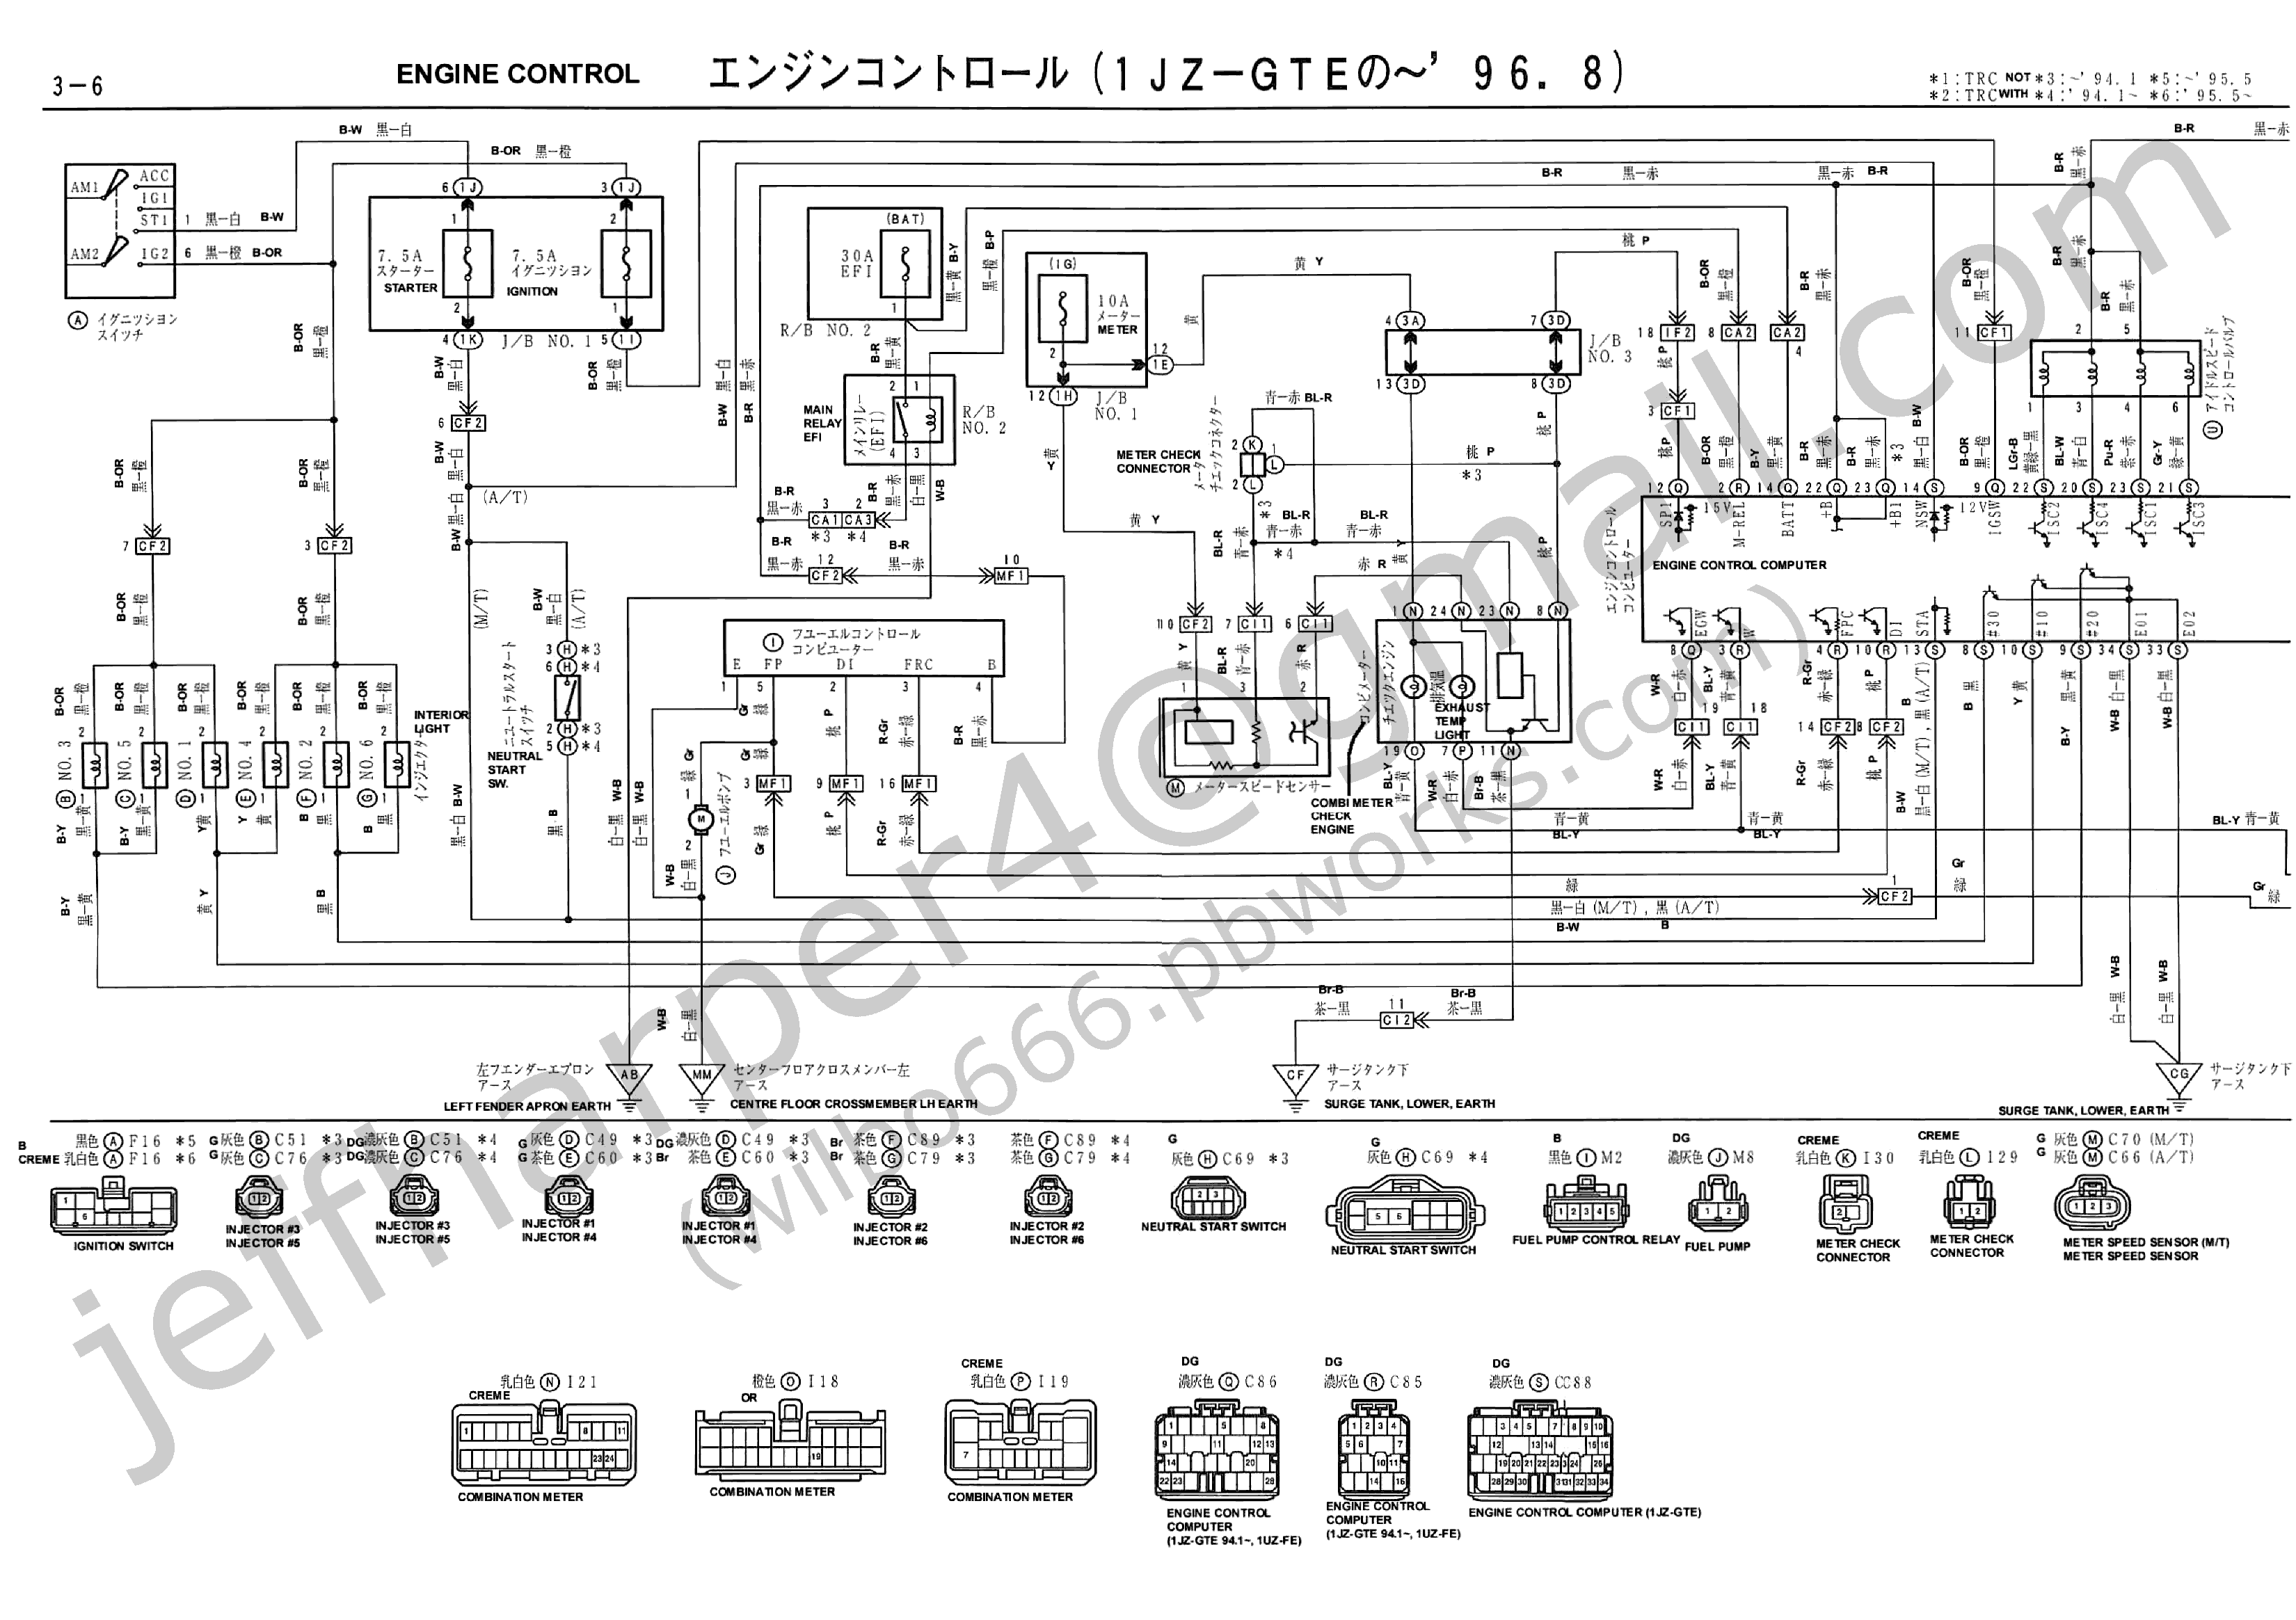 Hayabusa Ecu Wiring Diagram. Wiring. Wiring Diagrams Instructions